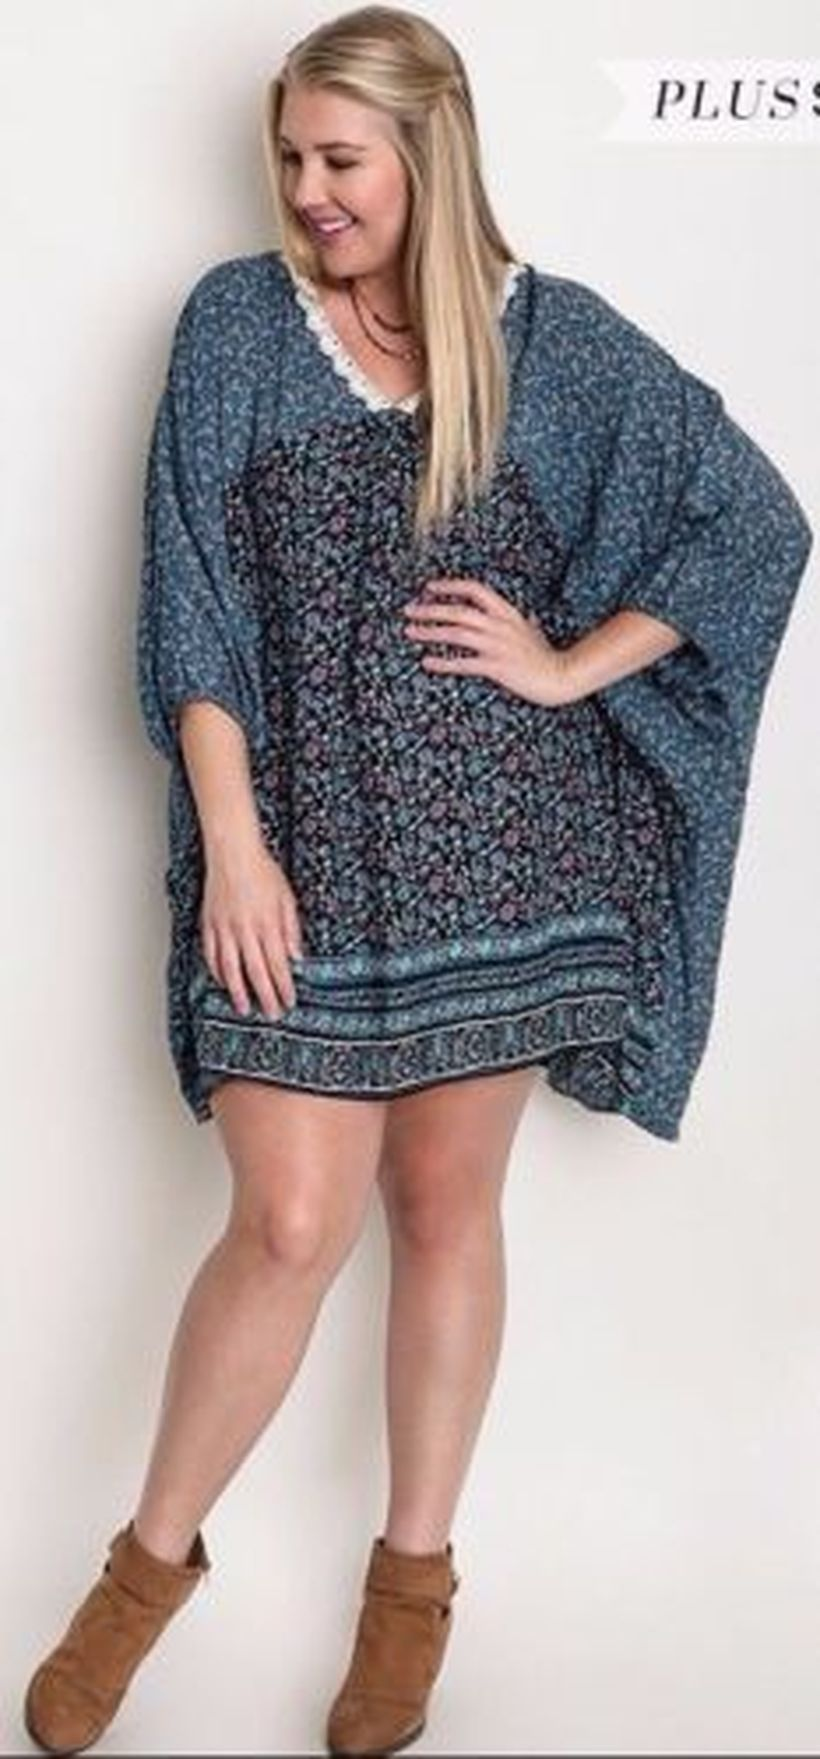 Plus size boho outfit style 7